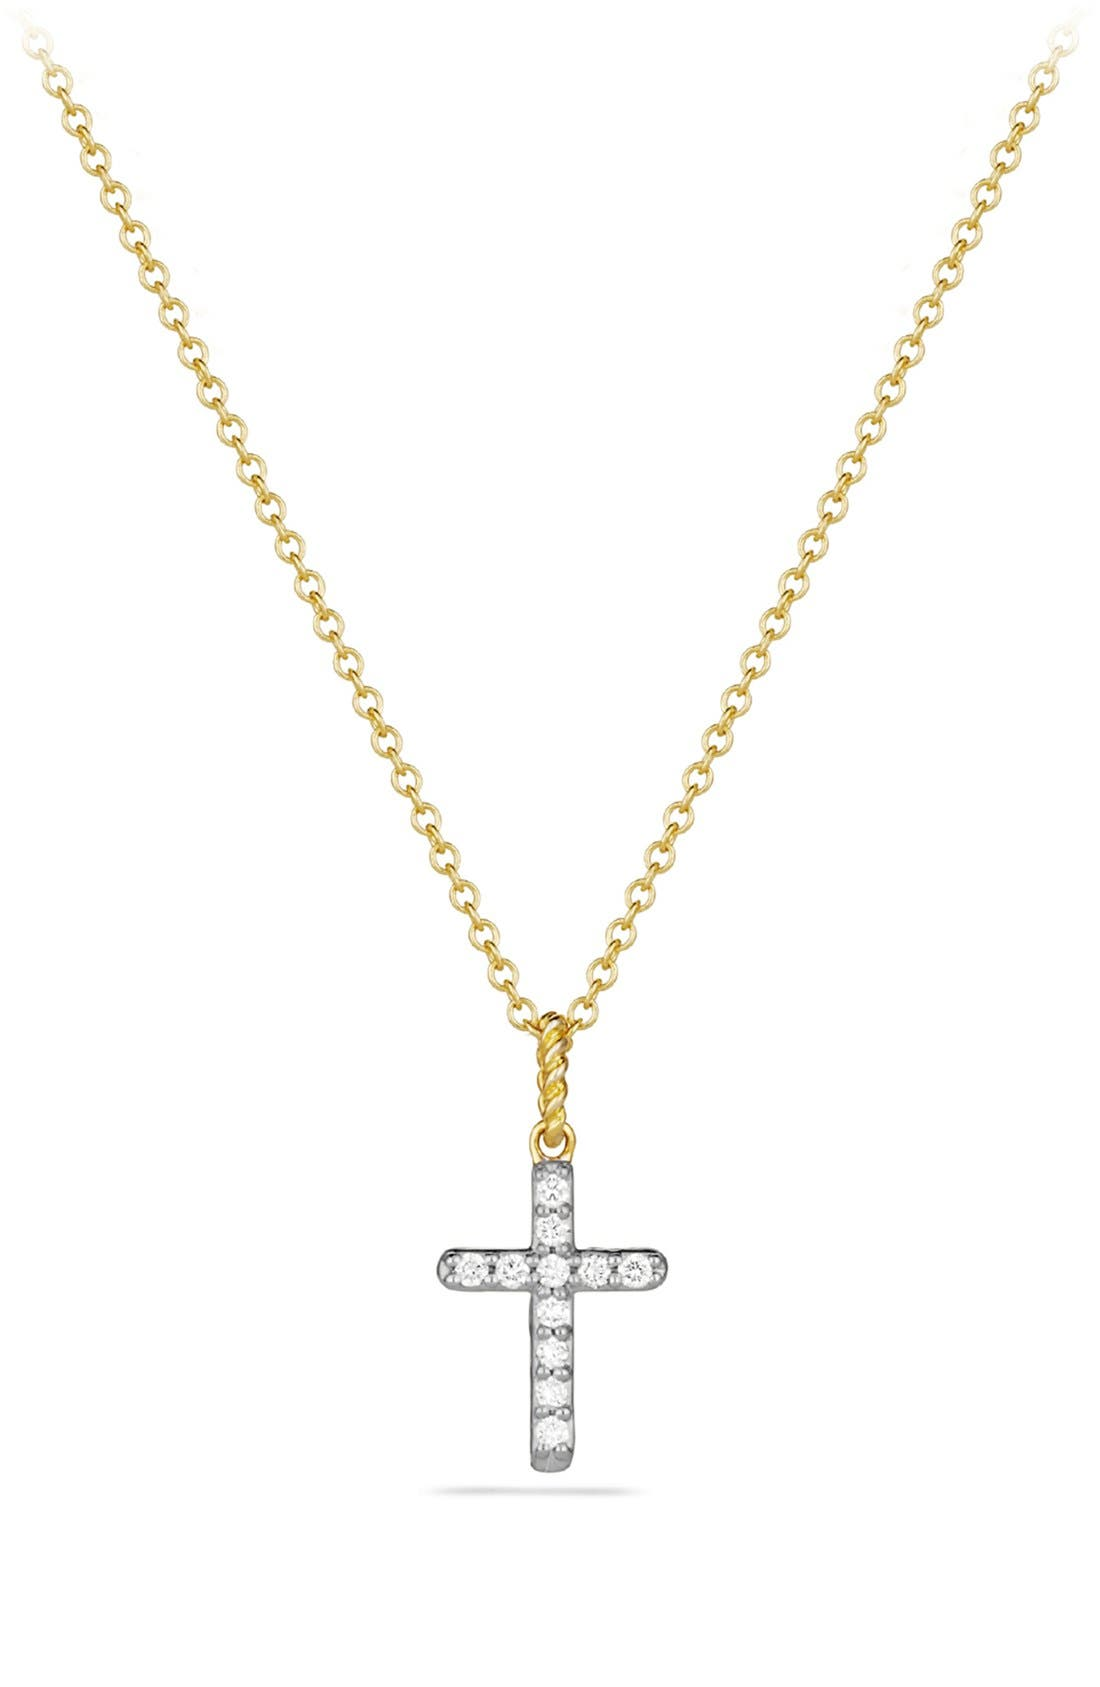 Main Image - David Yurman 'Cable Collectibles' Cross with Diamonds in Gold on Chain